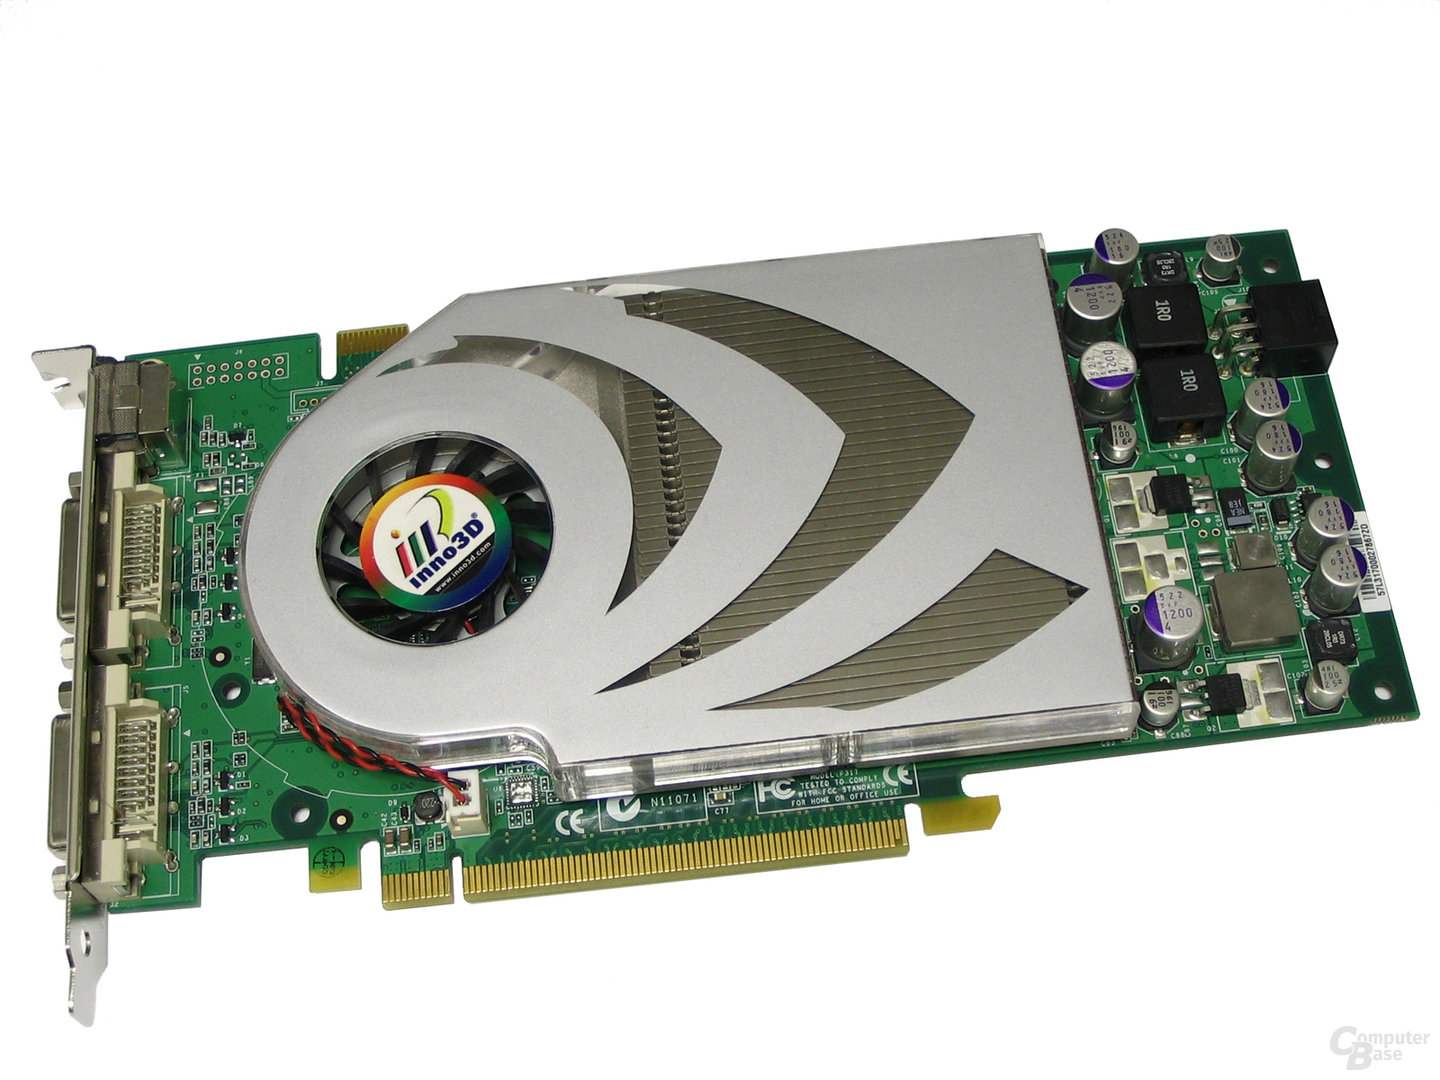 GeForce 7800 GT